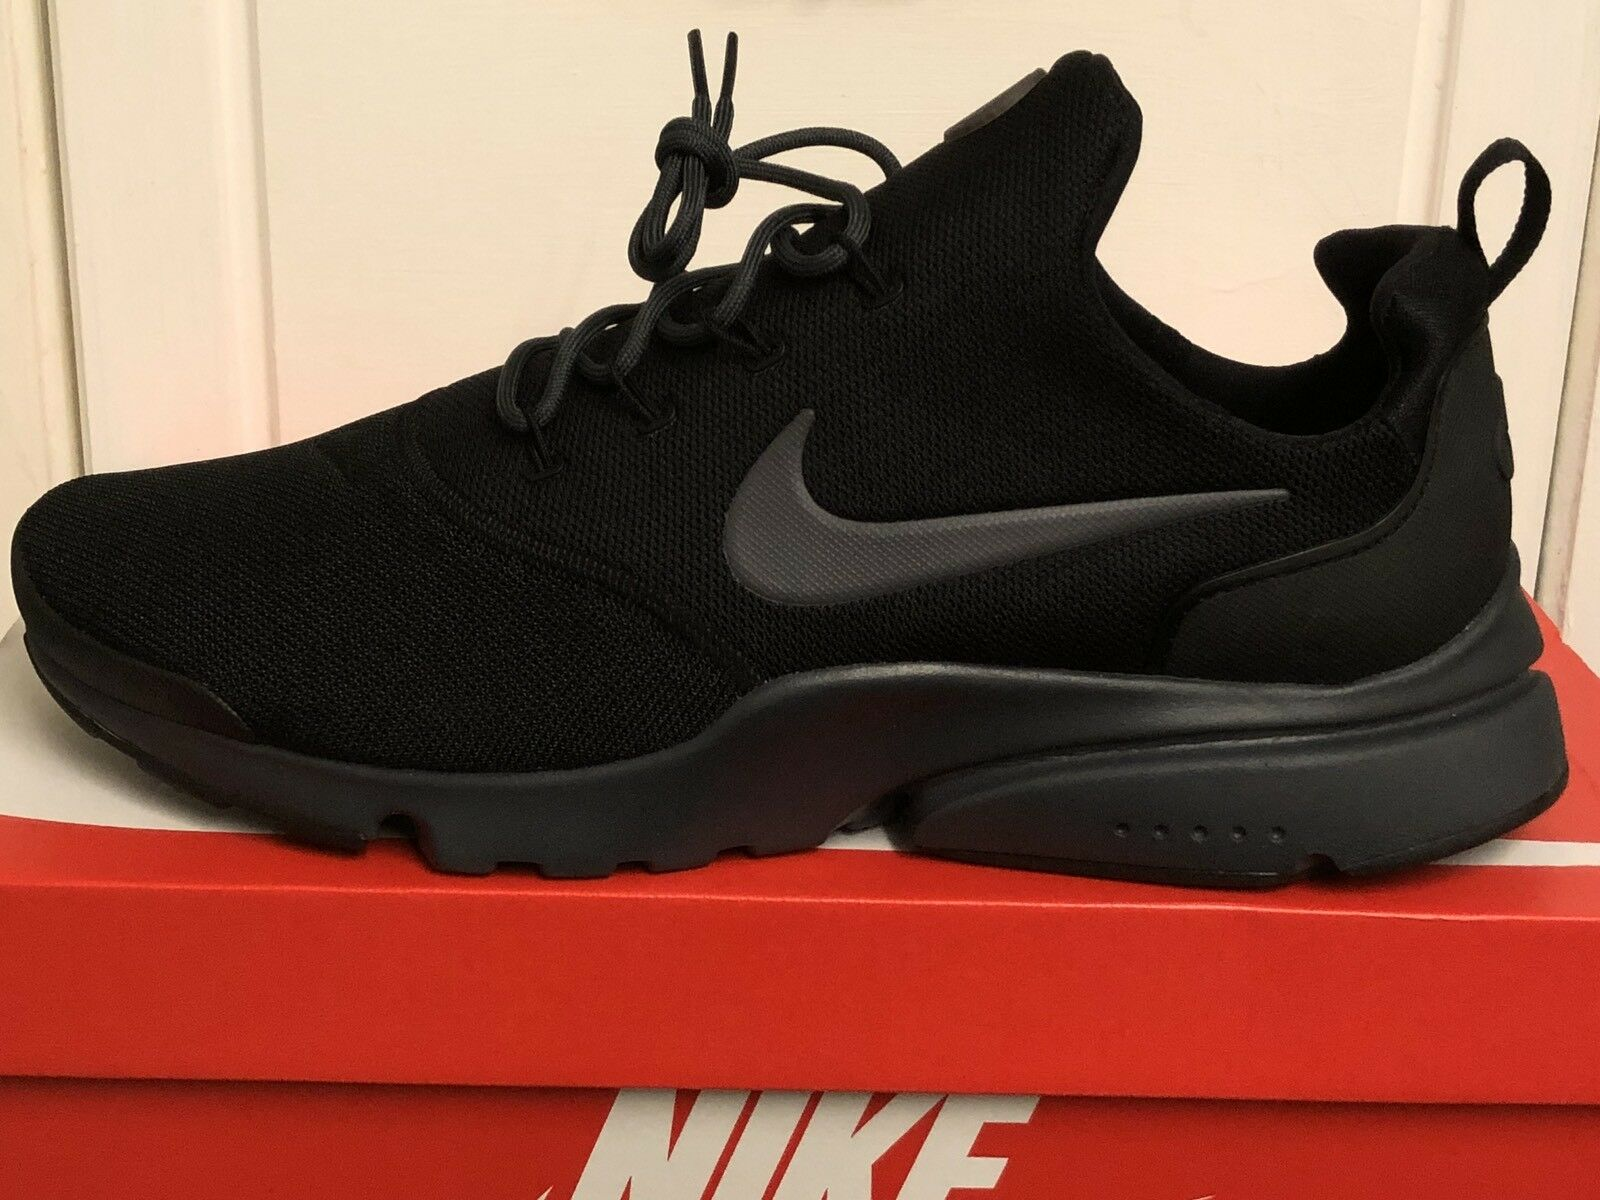 NIKE Chaussures AIR PRESTO FLY Hommes TRAINERS Baskets Chaussures NIKE 12 Eur 47,5 Noir fc6199